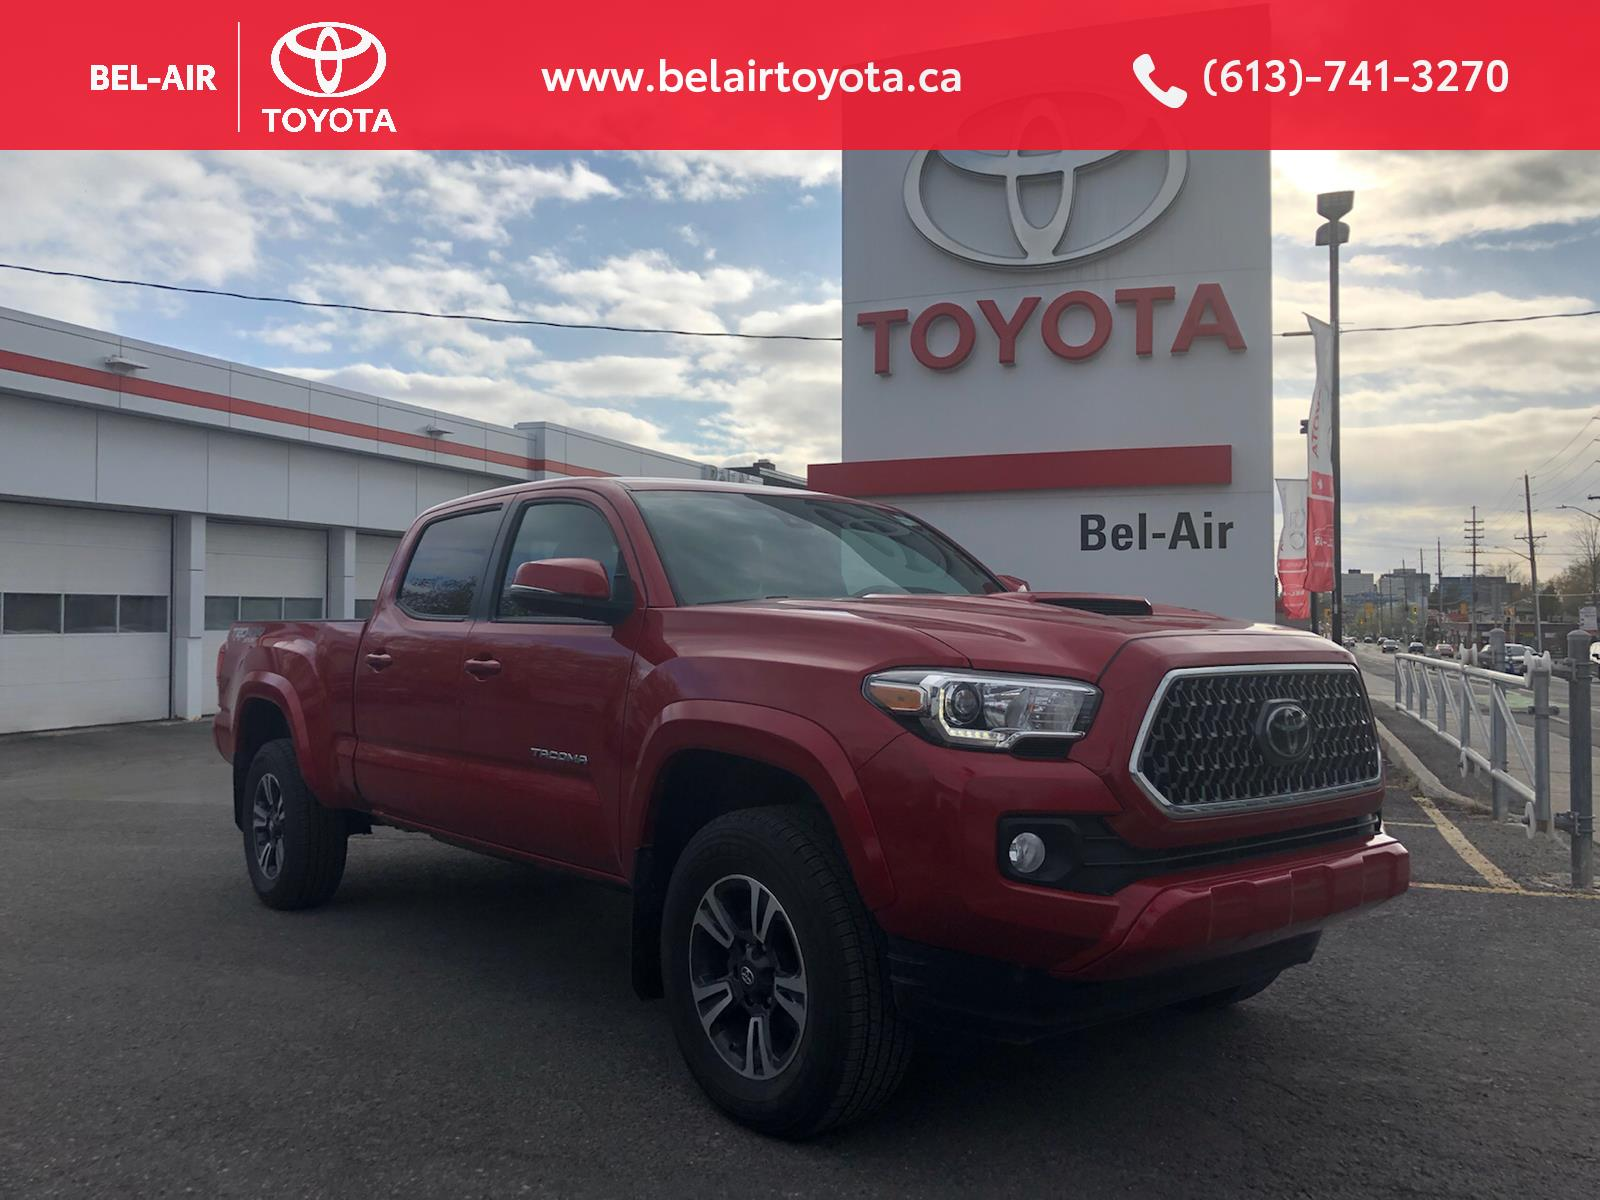 2018 Toyota Tacoma at Bel-Air Toyota